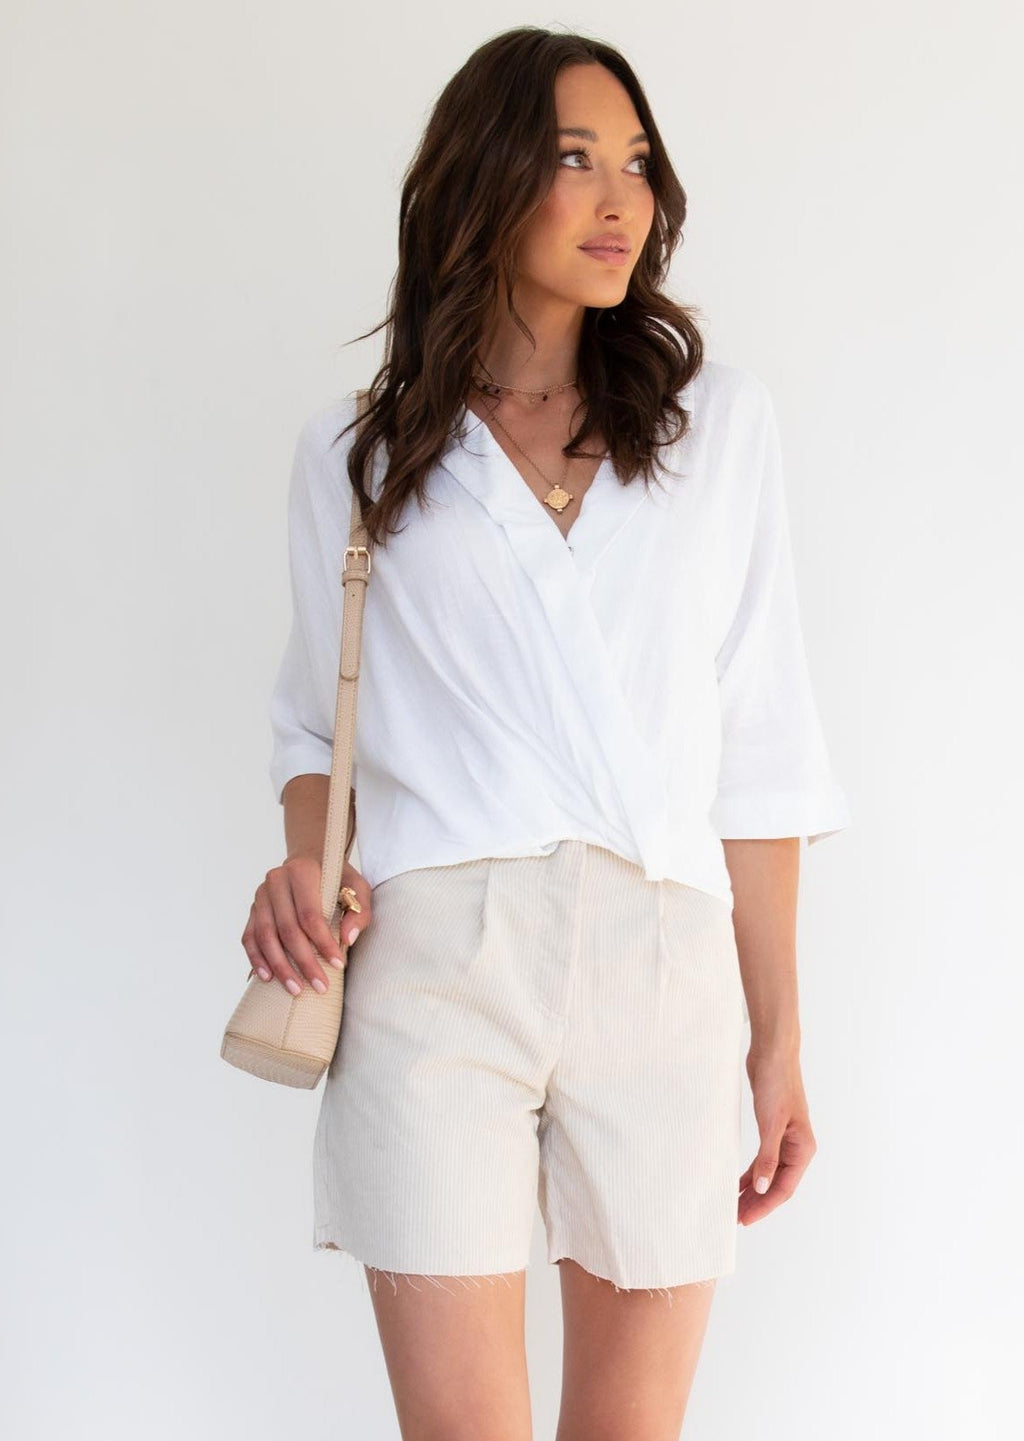 IRENA WHITE LINEN TOP - Saphyra Boutique